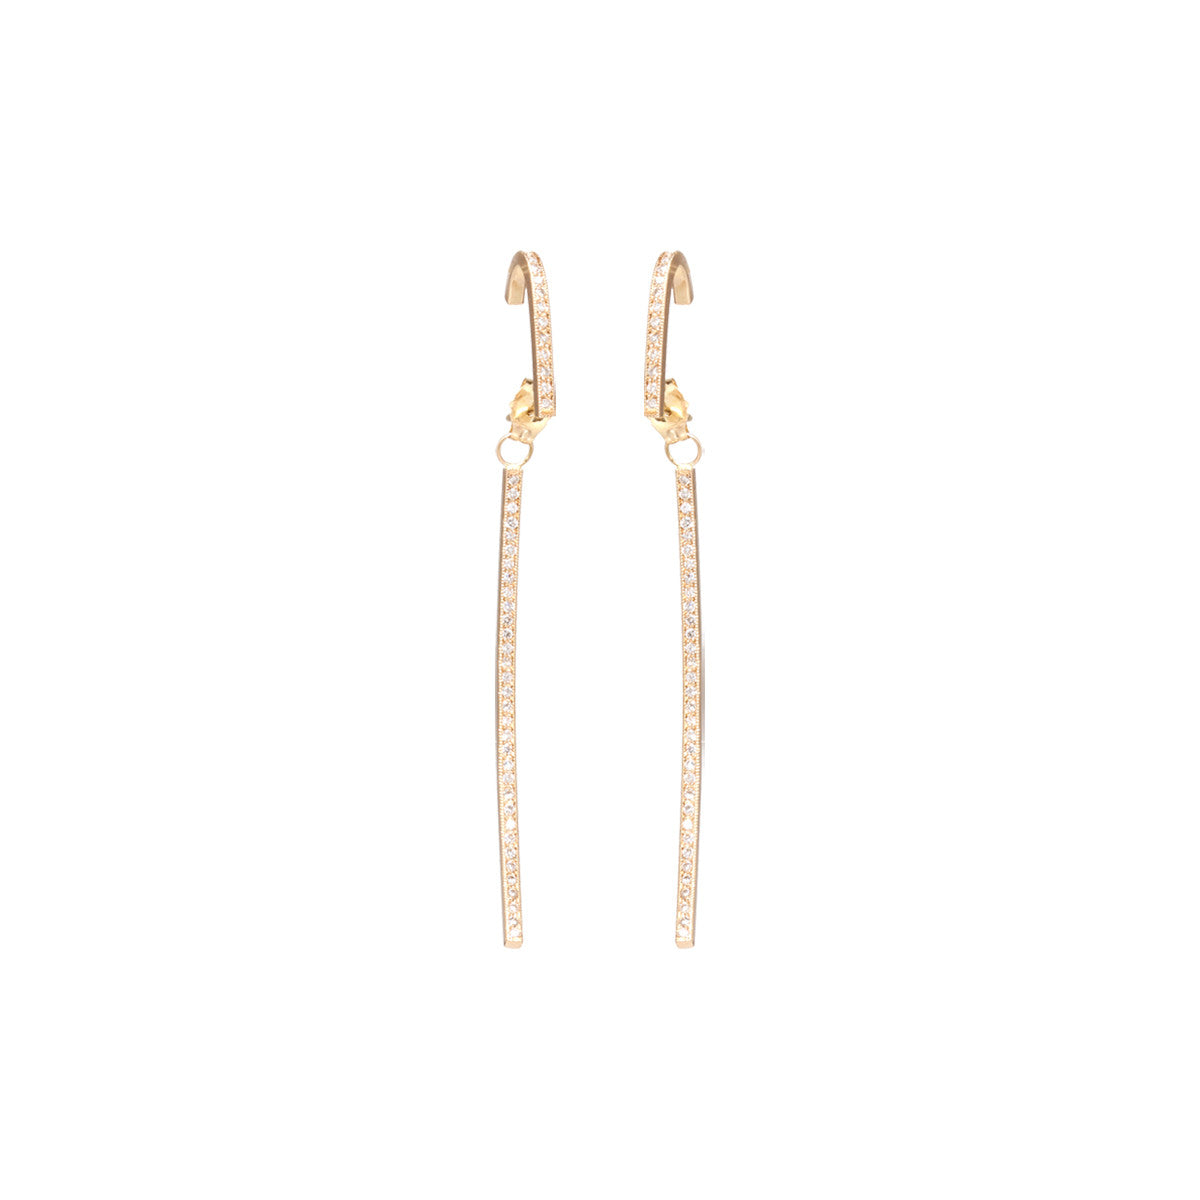 Zoë Chicco 14kt Yellow Gold White Diamond Pave Curved Bar Earrings